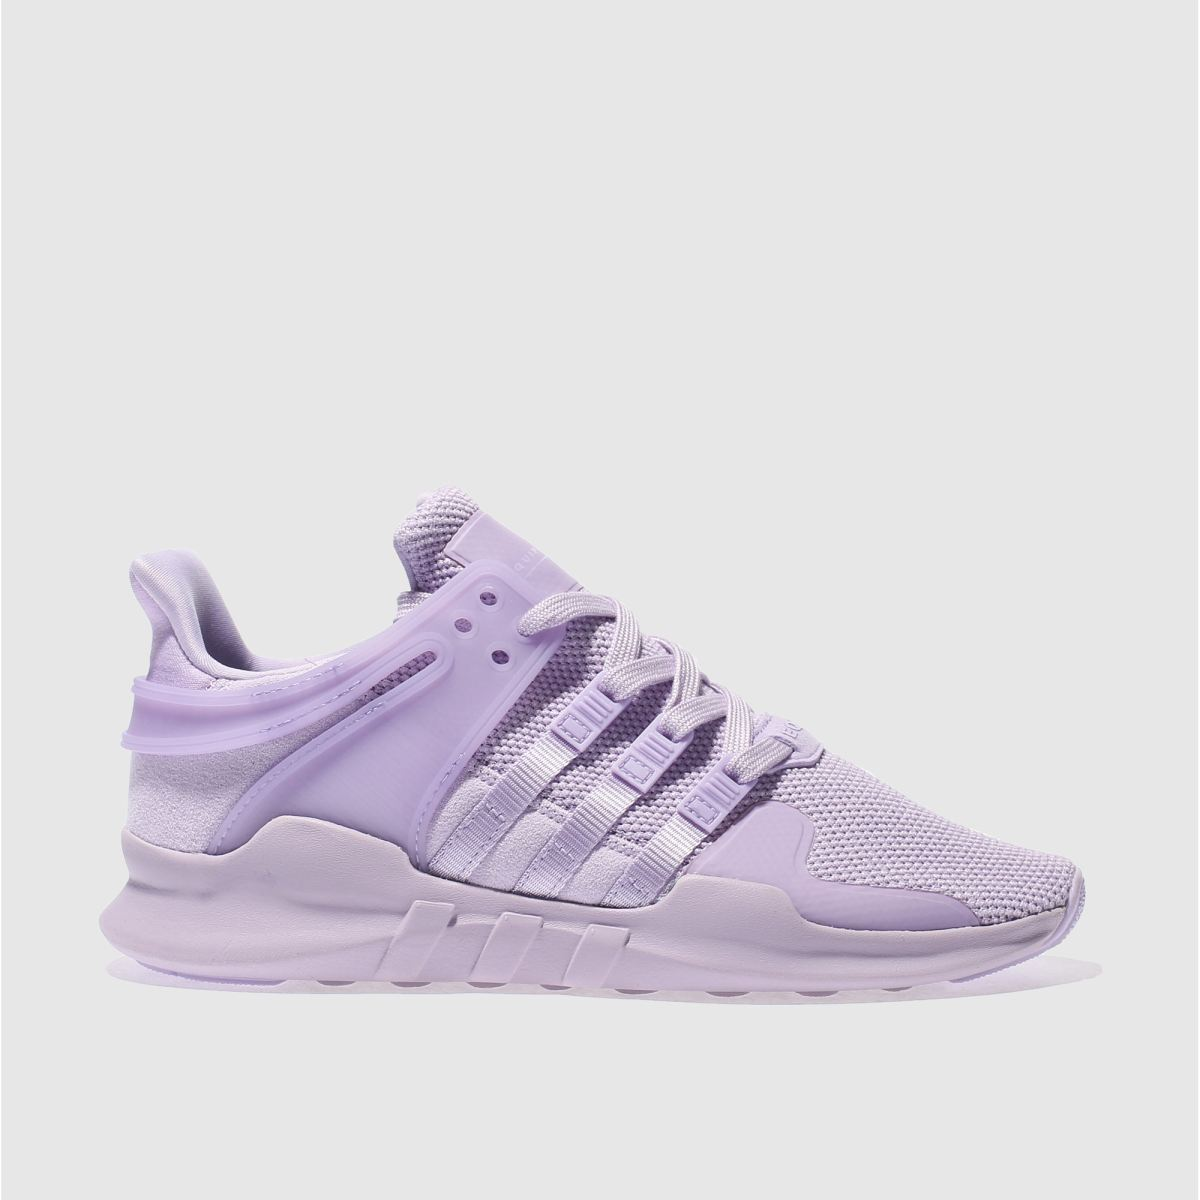 adidas lilac eqt support adv trainers